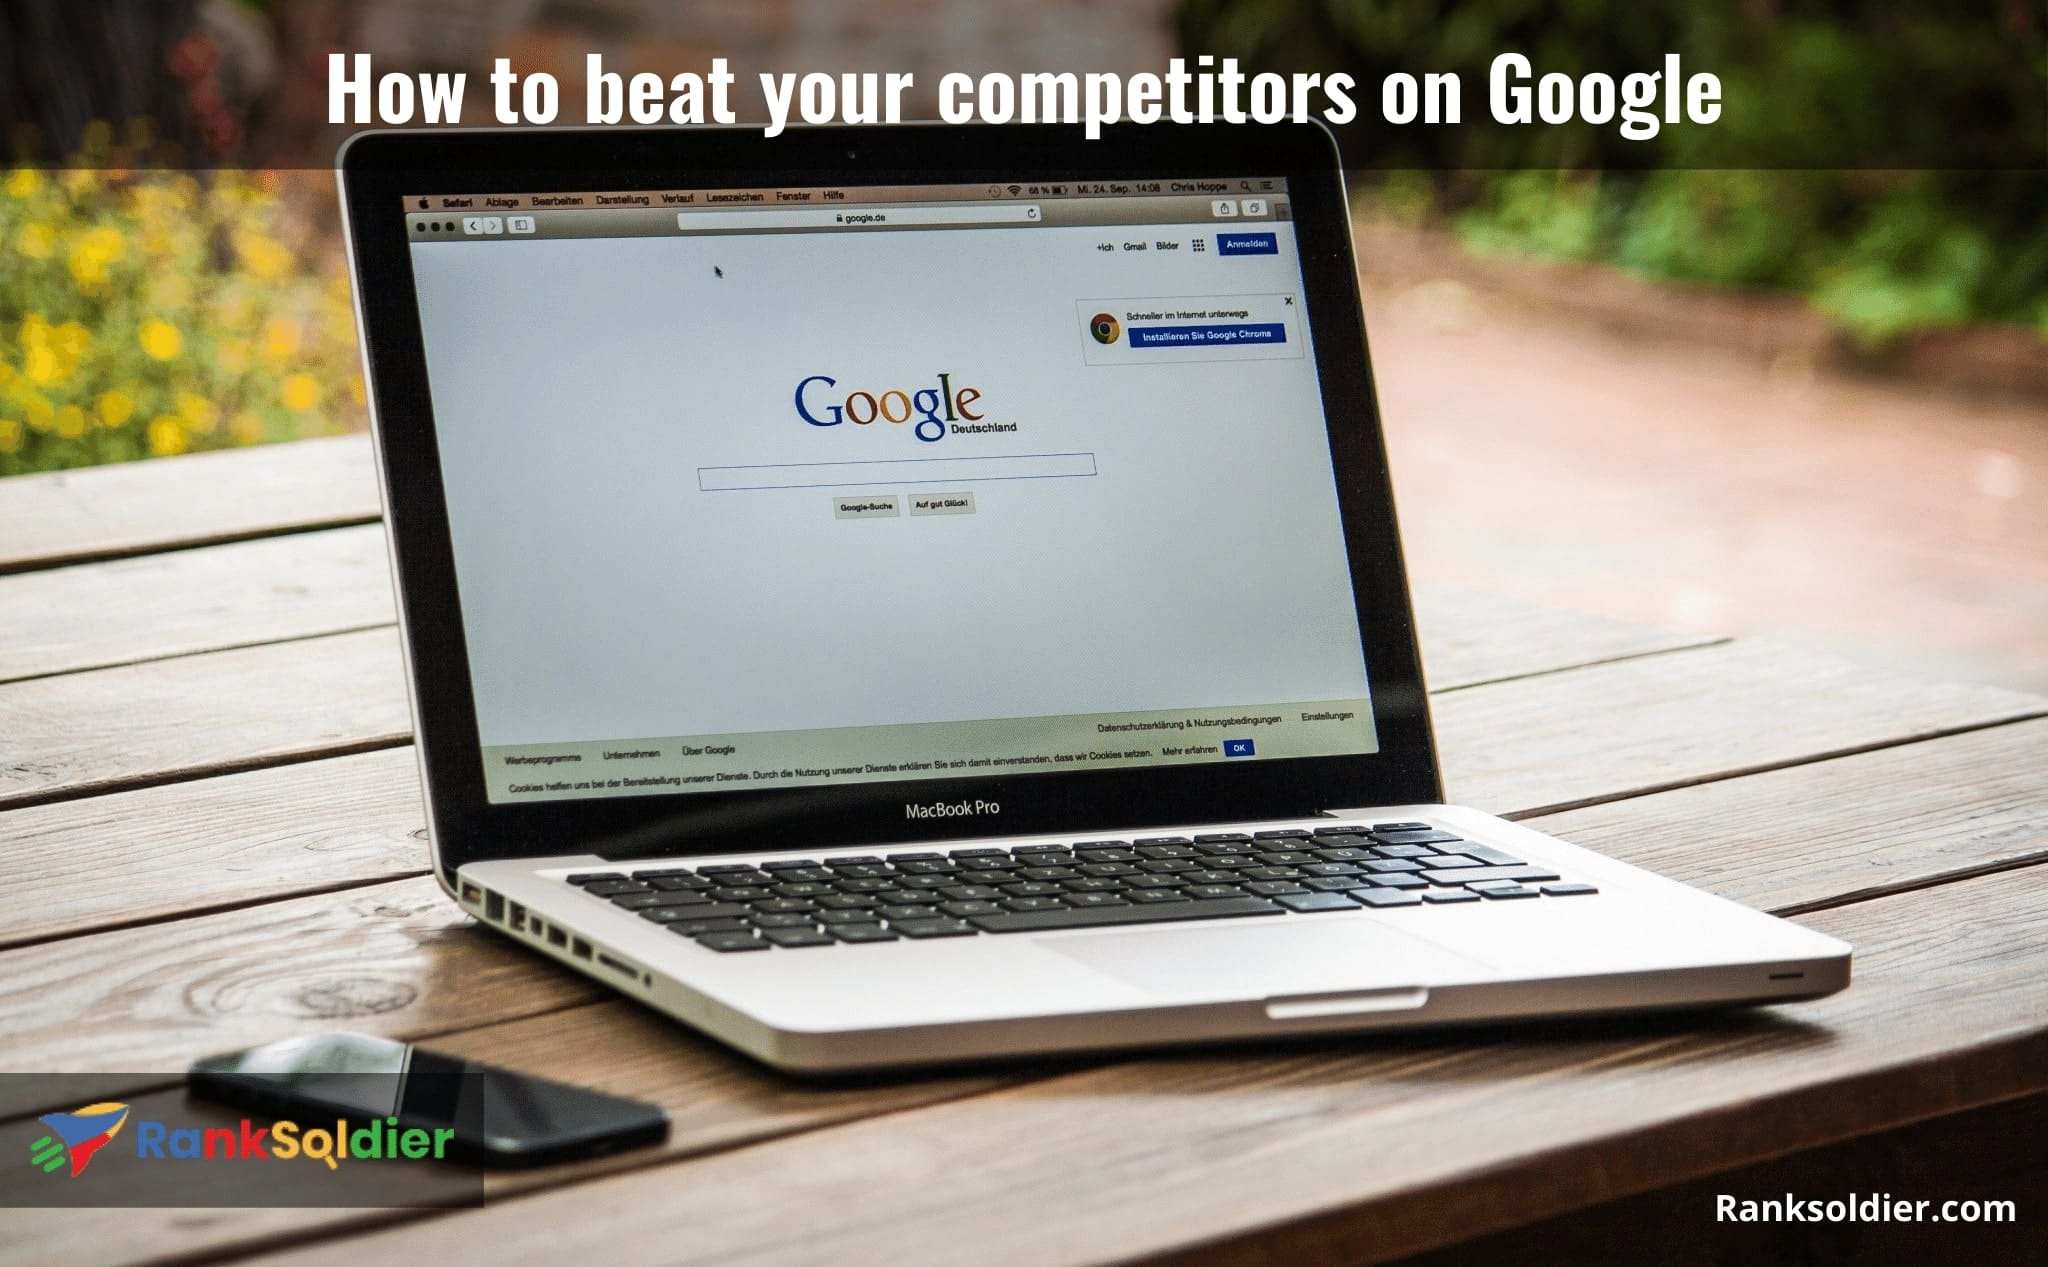 How to beat your competitors on Google